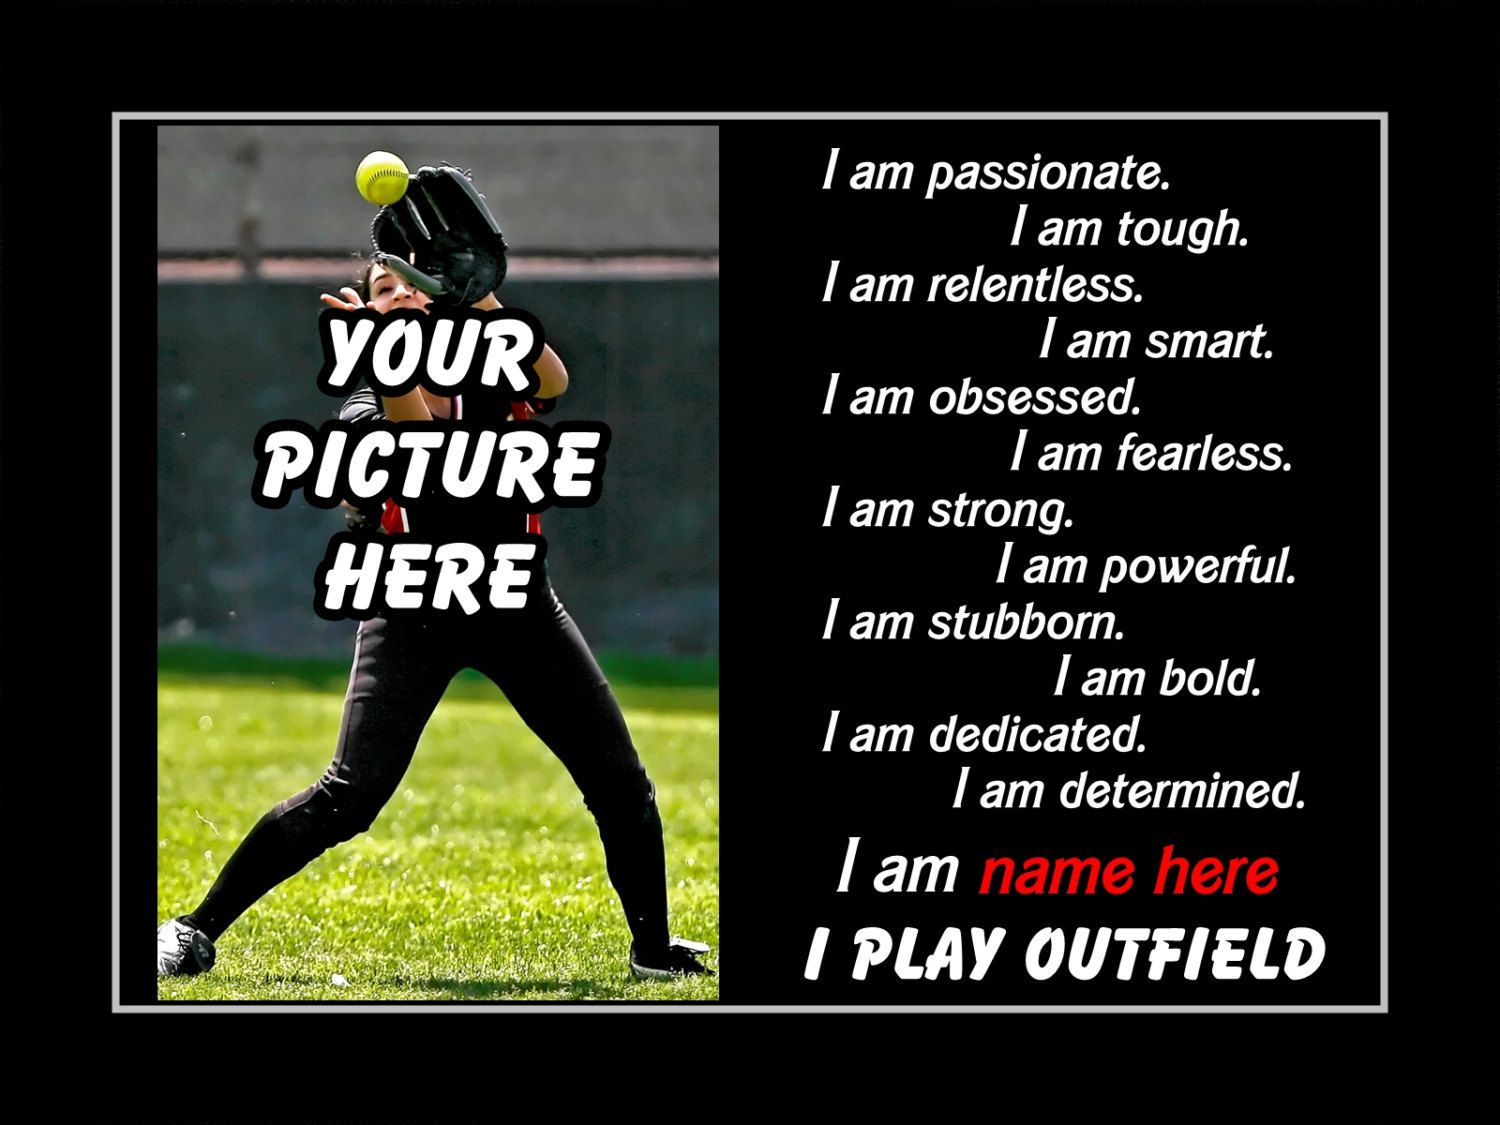 Personalized Softball Custom Poster I PLAY OUTFIELD Photo Quote Wall Art Print 11x14 Motivation Pride Attributes Qualities